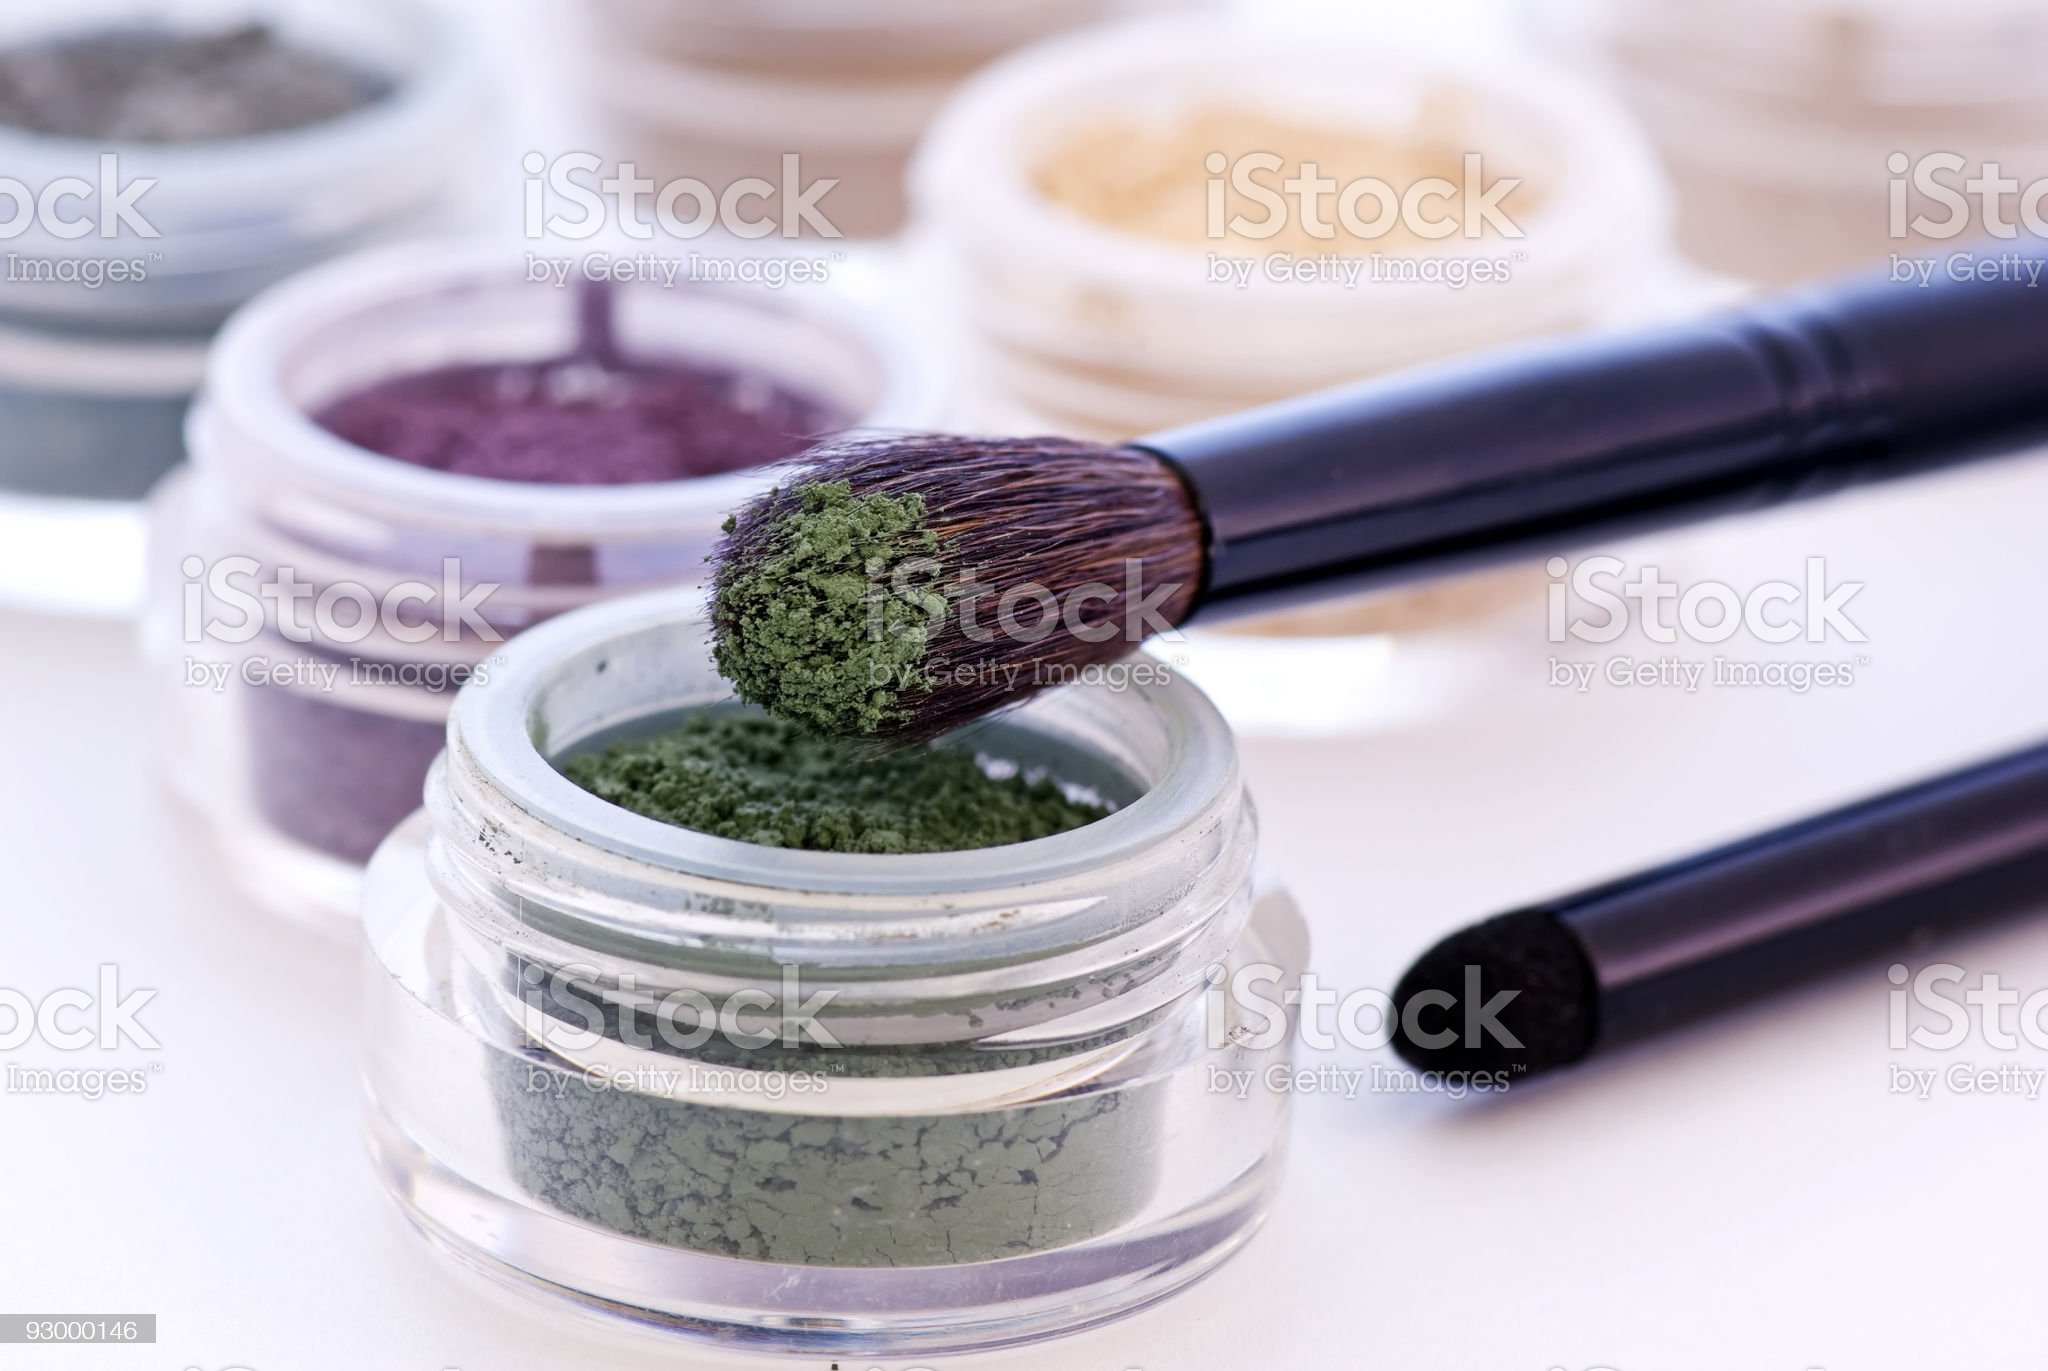 Eye Shadows with Brushes royalty-free stock photo